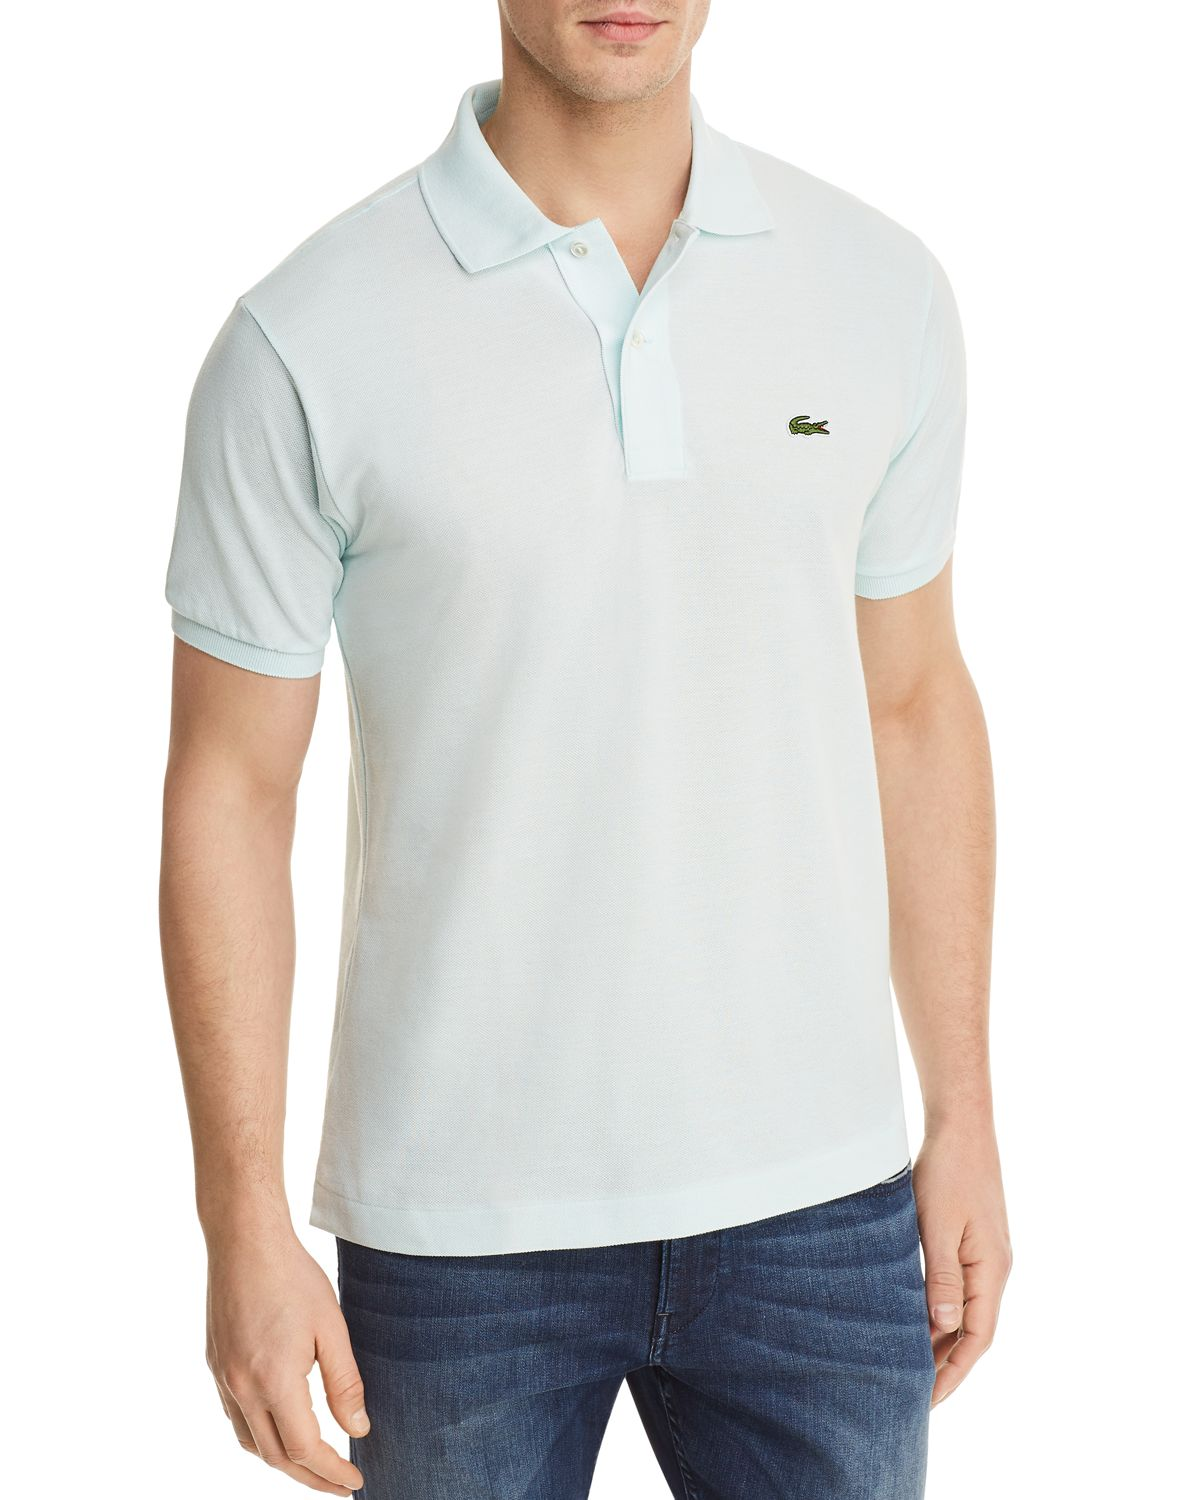 Classic Short Sleeve Piqué Polo Shirt by Lacoste